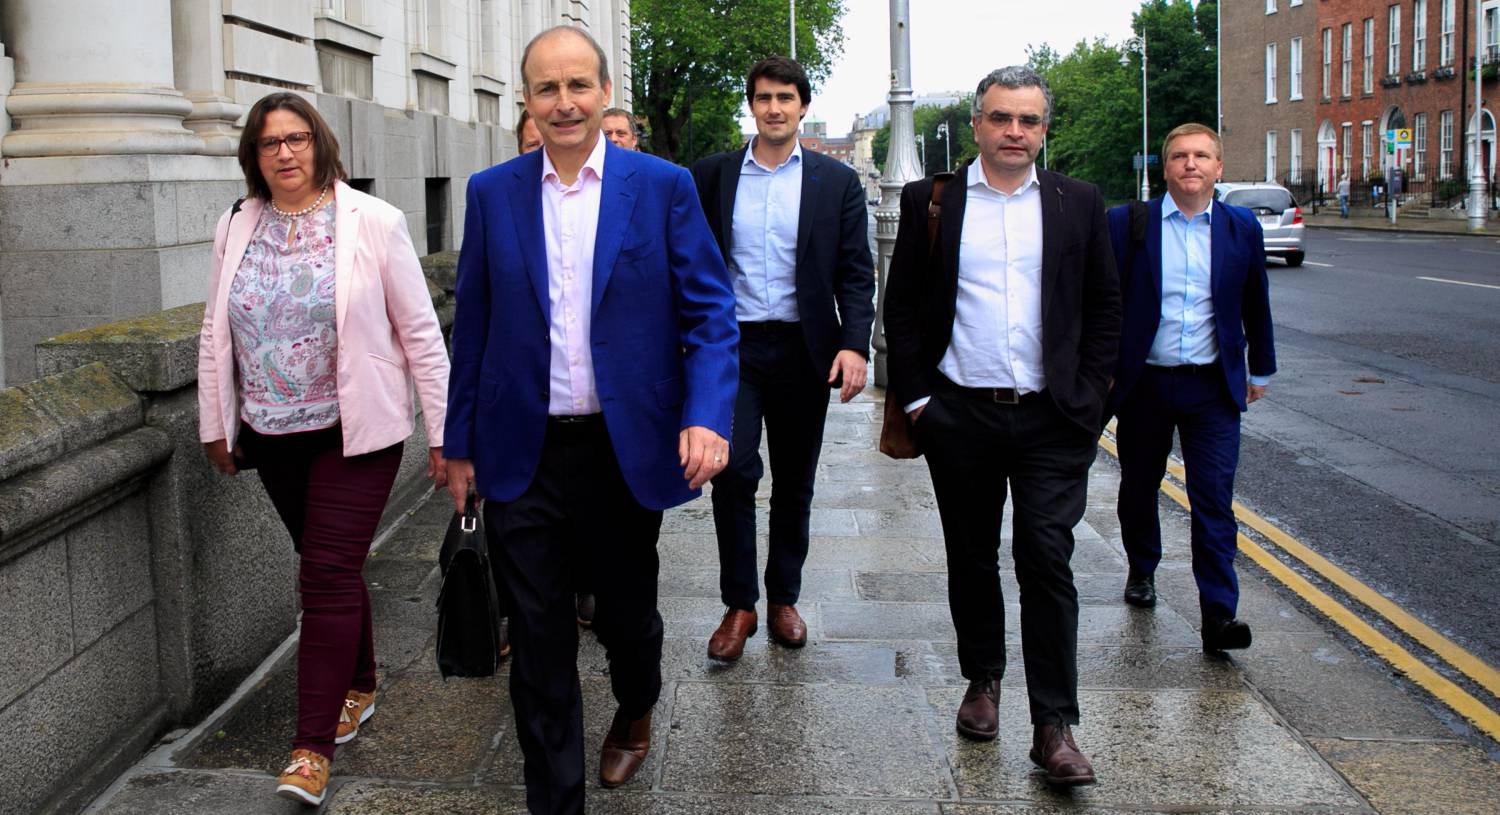 Green Party wins concessions as Government talks set to conclude